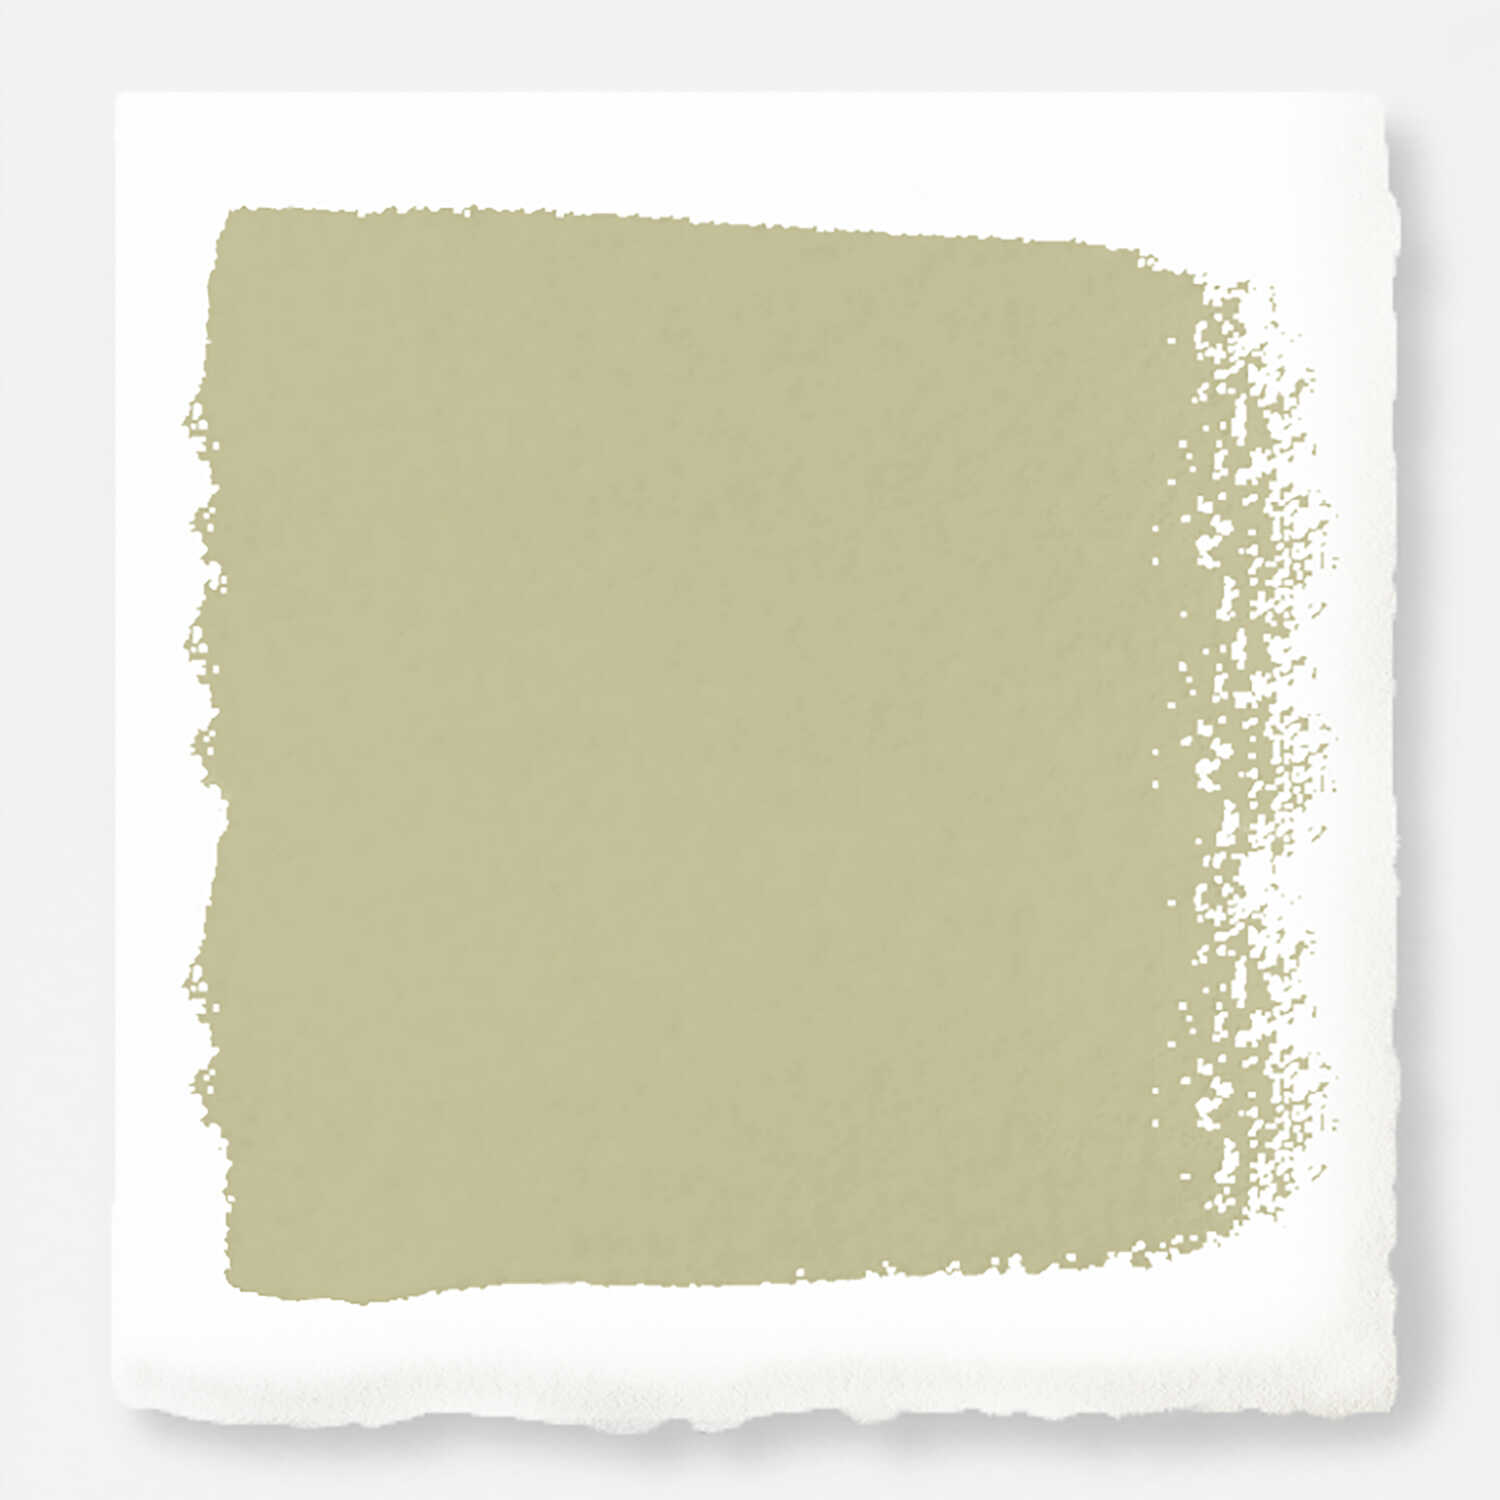 Magnolia Home  Semi-Gloss  Sour Apple  Exterior Paint and Primer  1 gal.